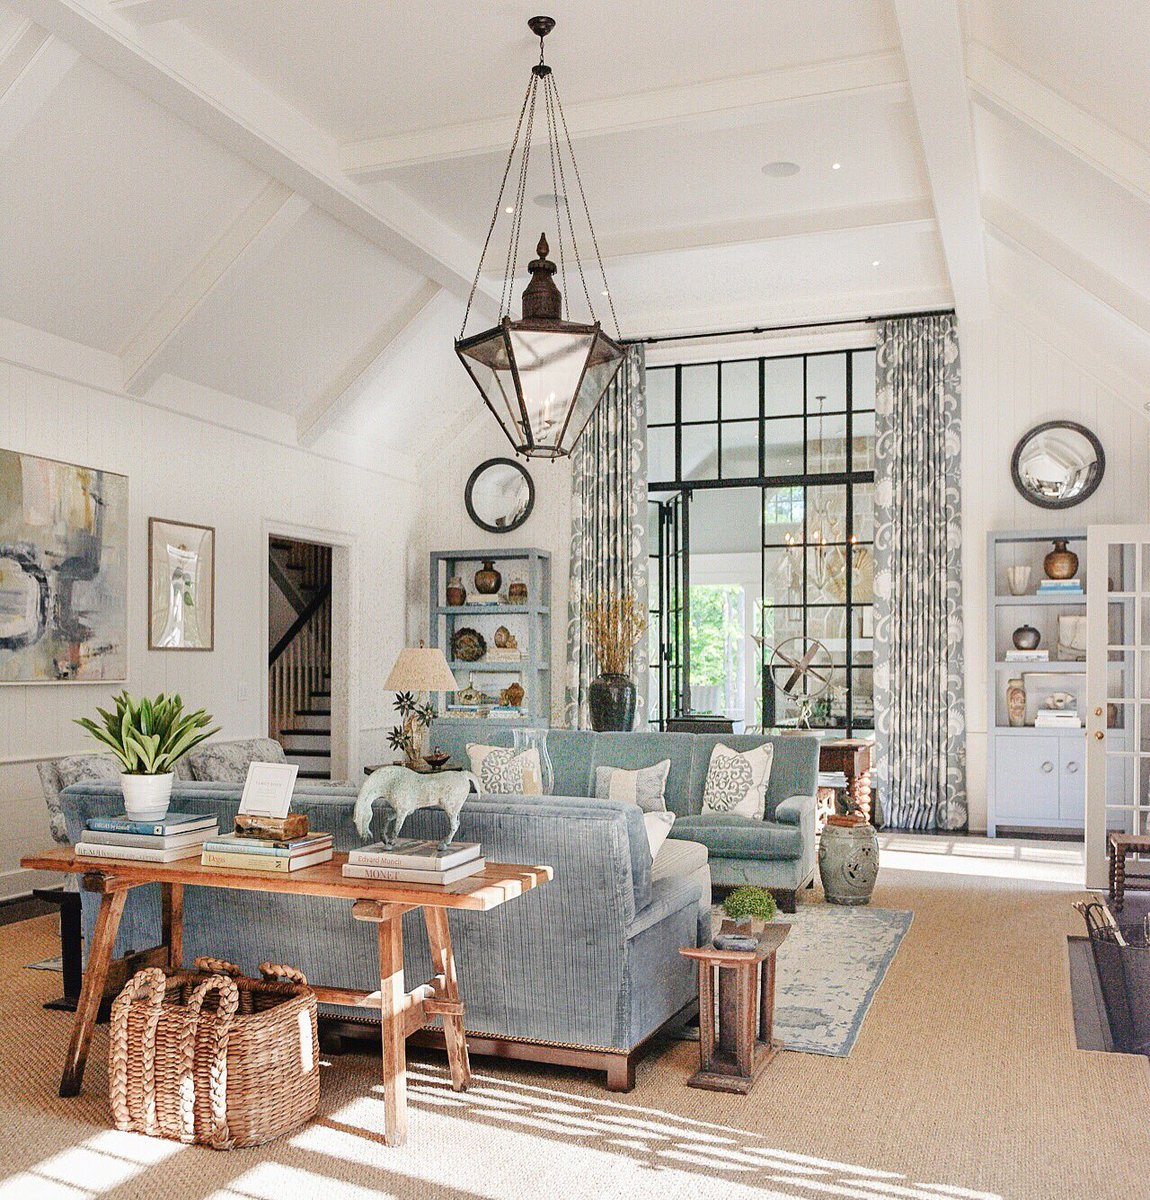 Blue decor in living room with steel and glass doors and transom. Southeastern Designer Show House. #livingroom #lantern #decorinspiration